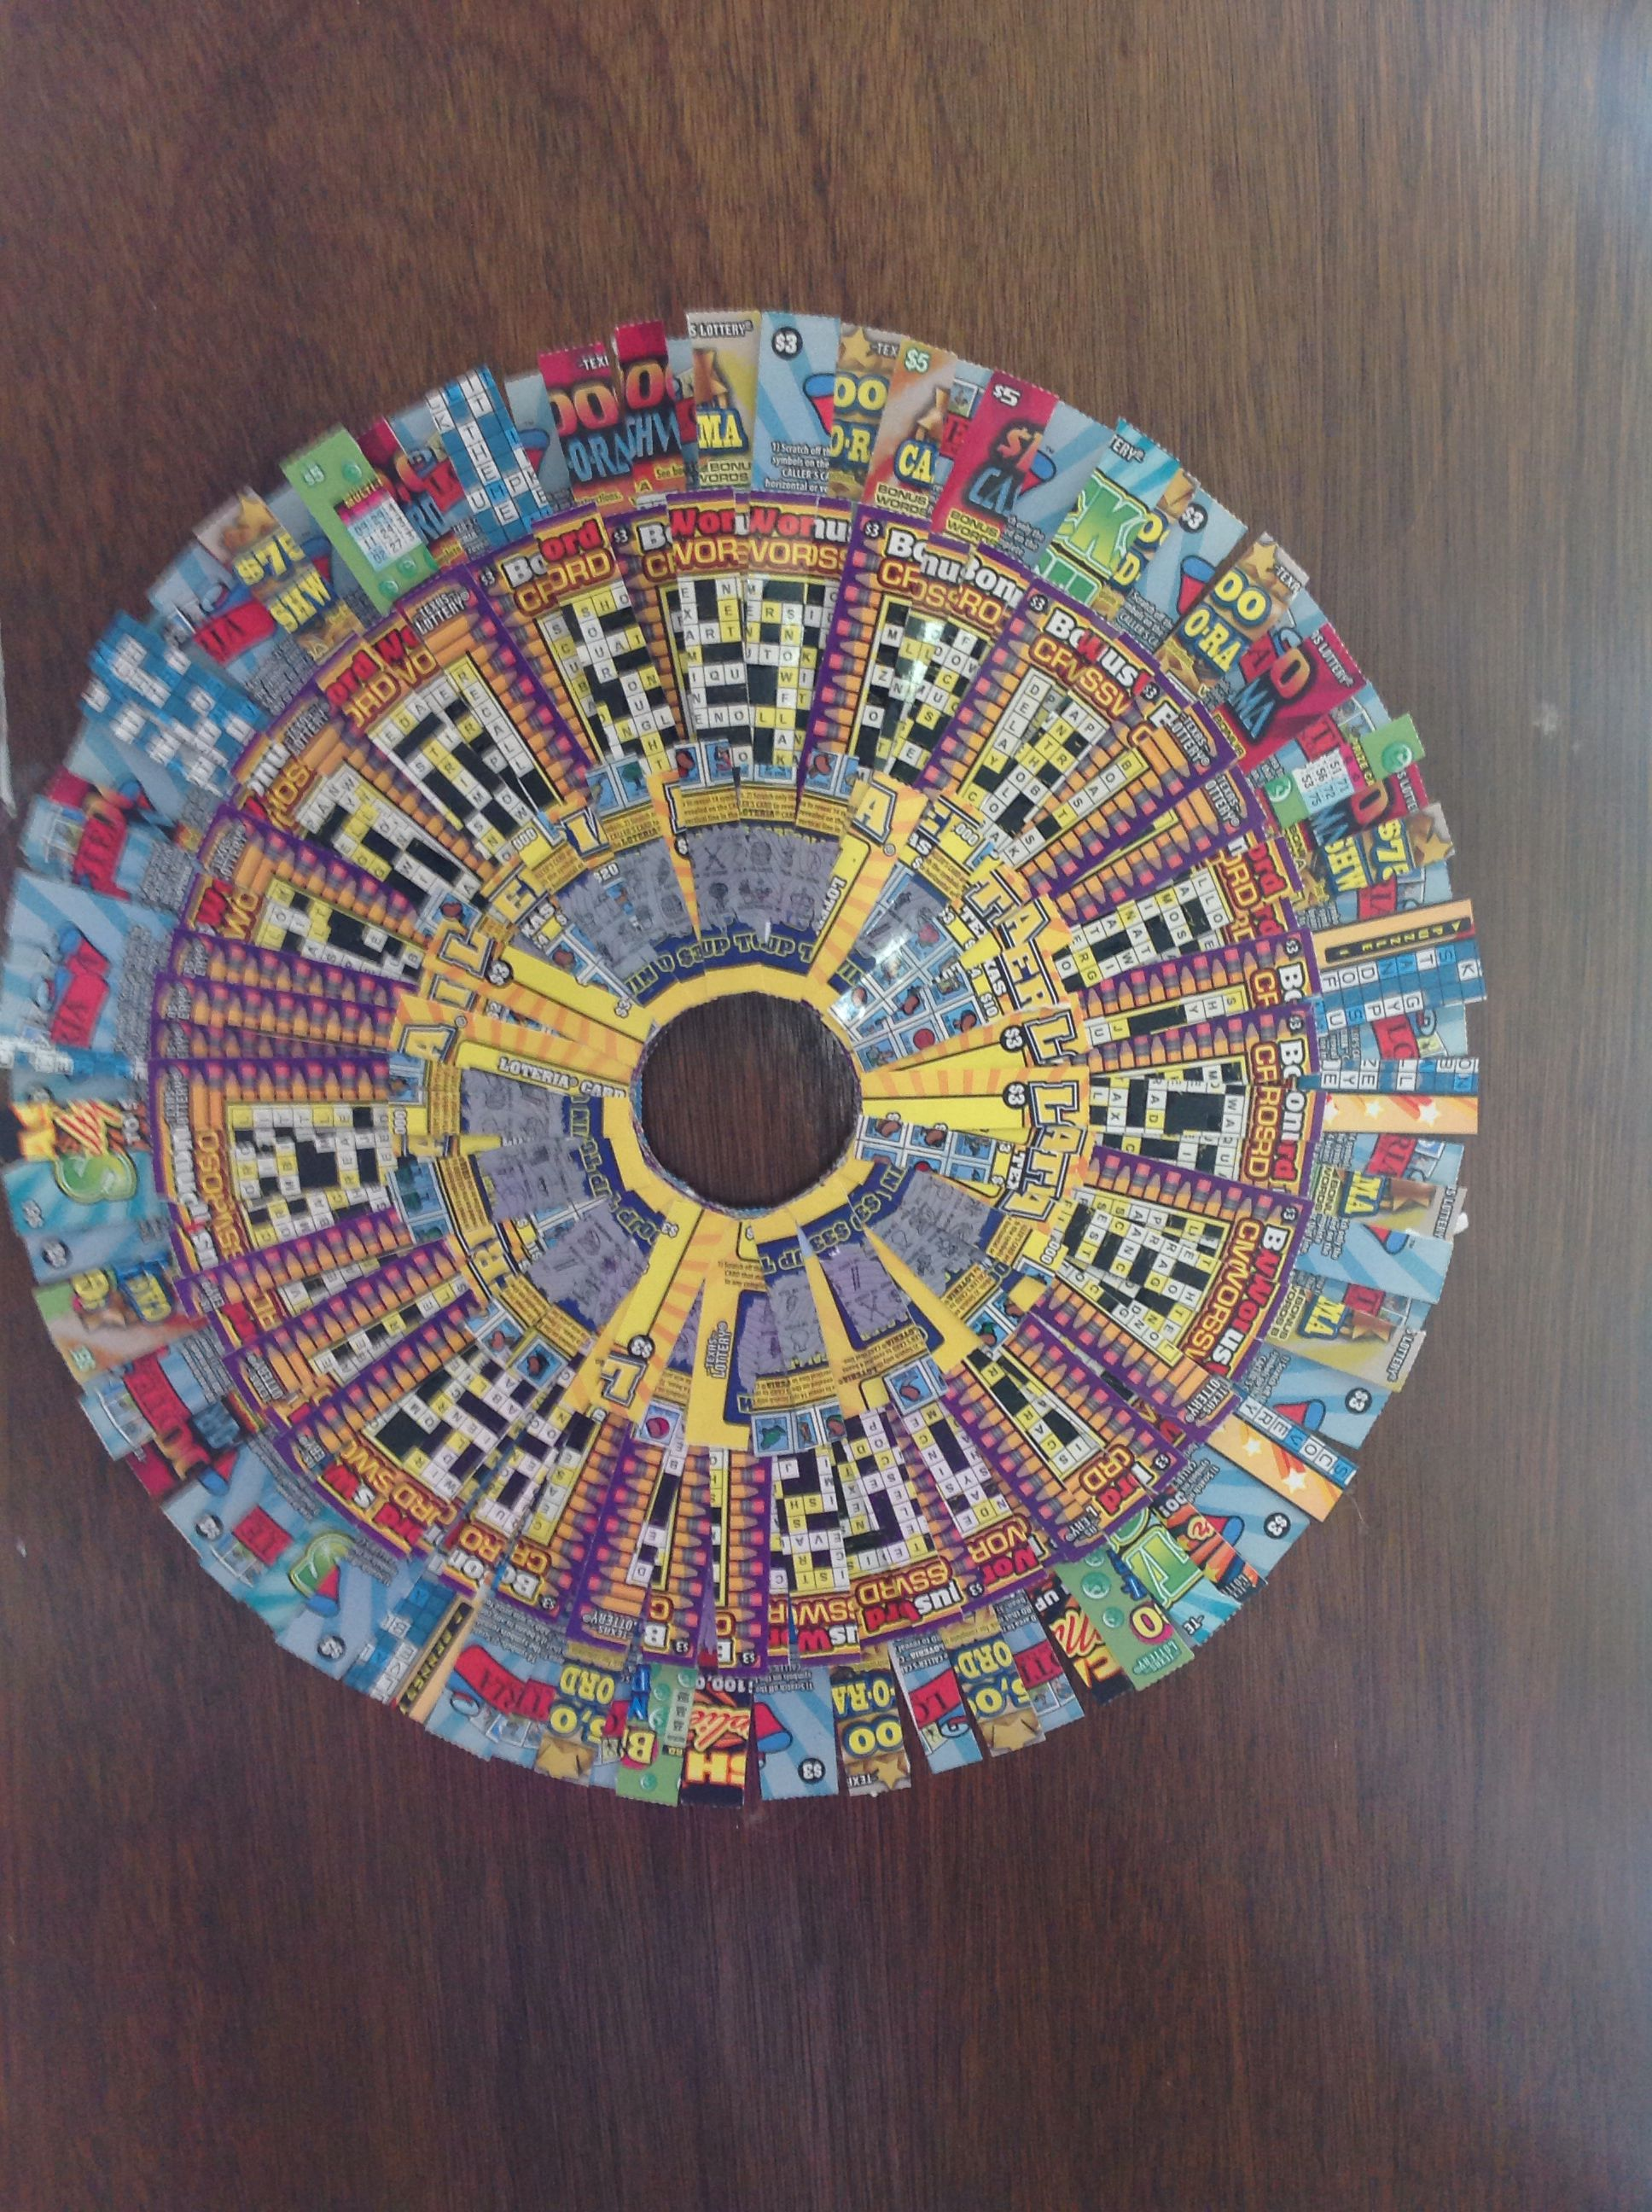 Scratch Off Ticket Wreath Scratch Tickets Displays